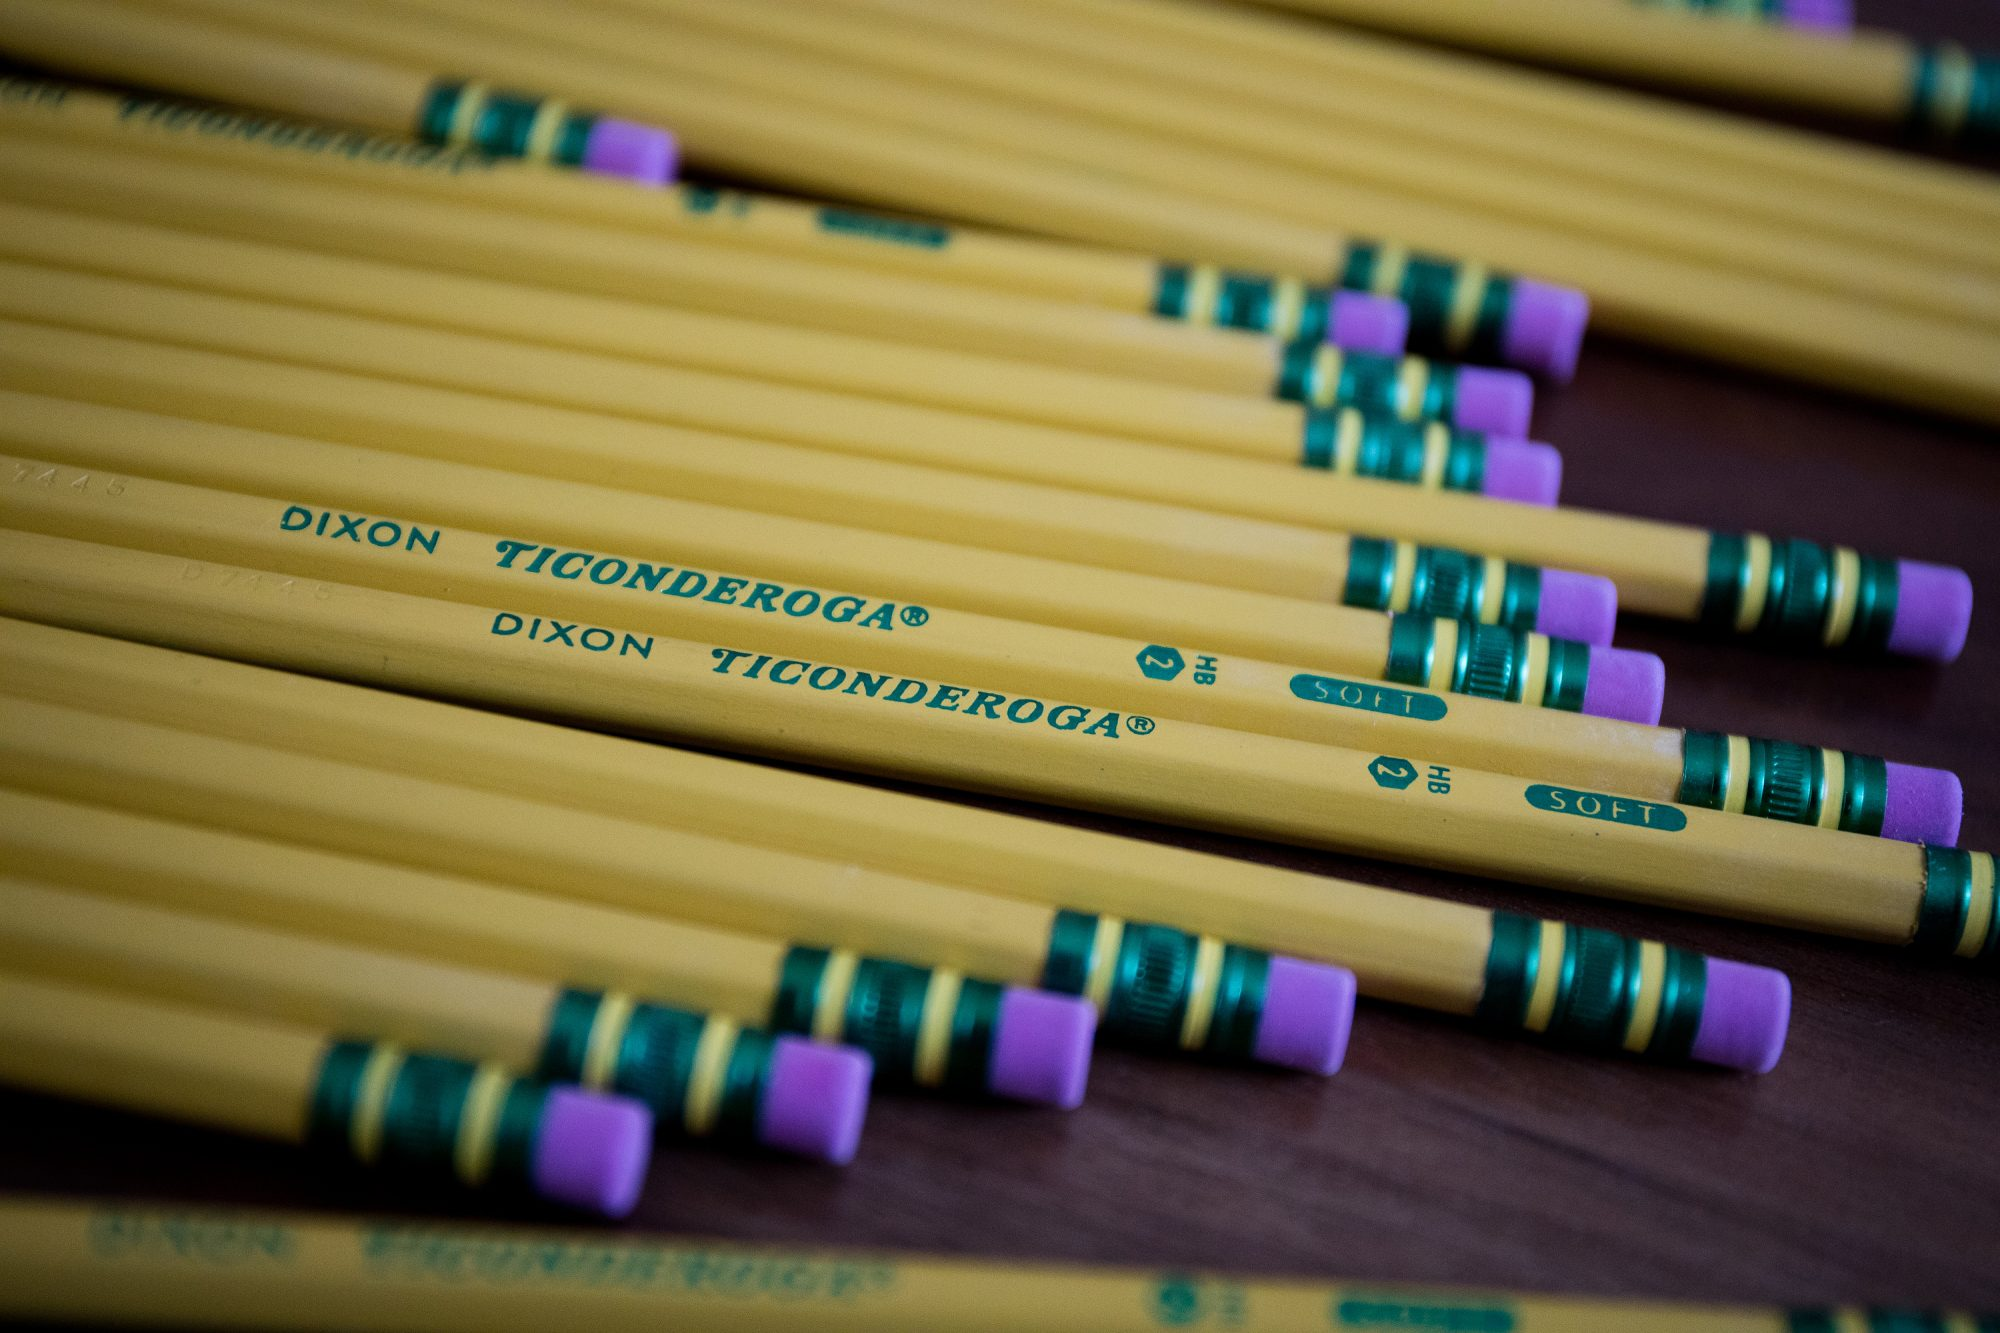 Dixon Ticonderoga Pencils